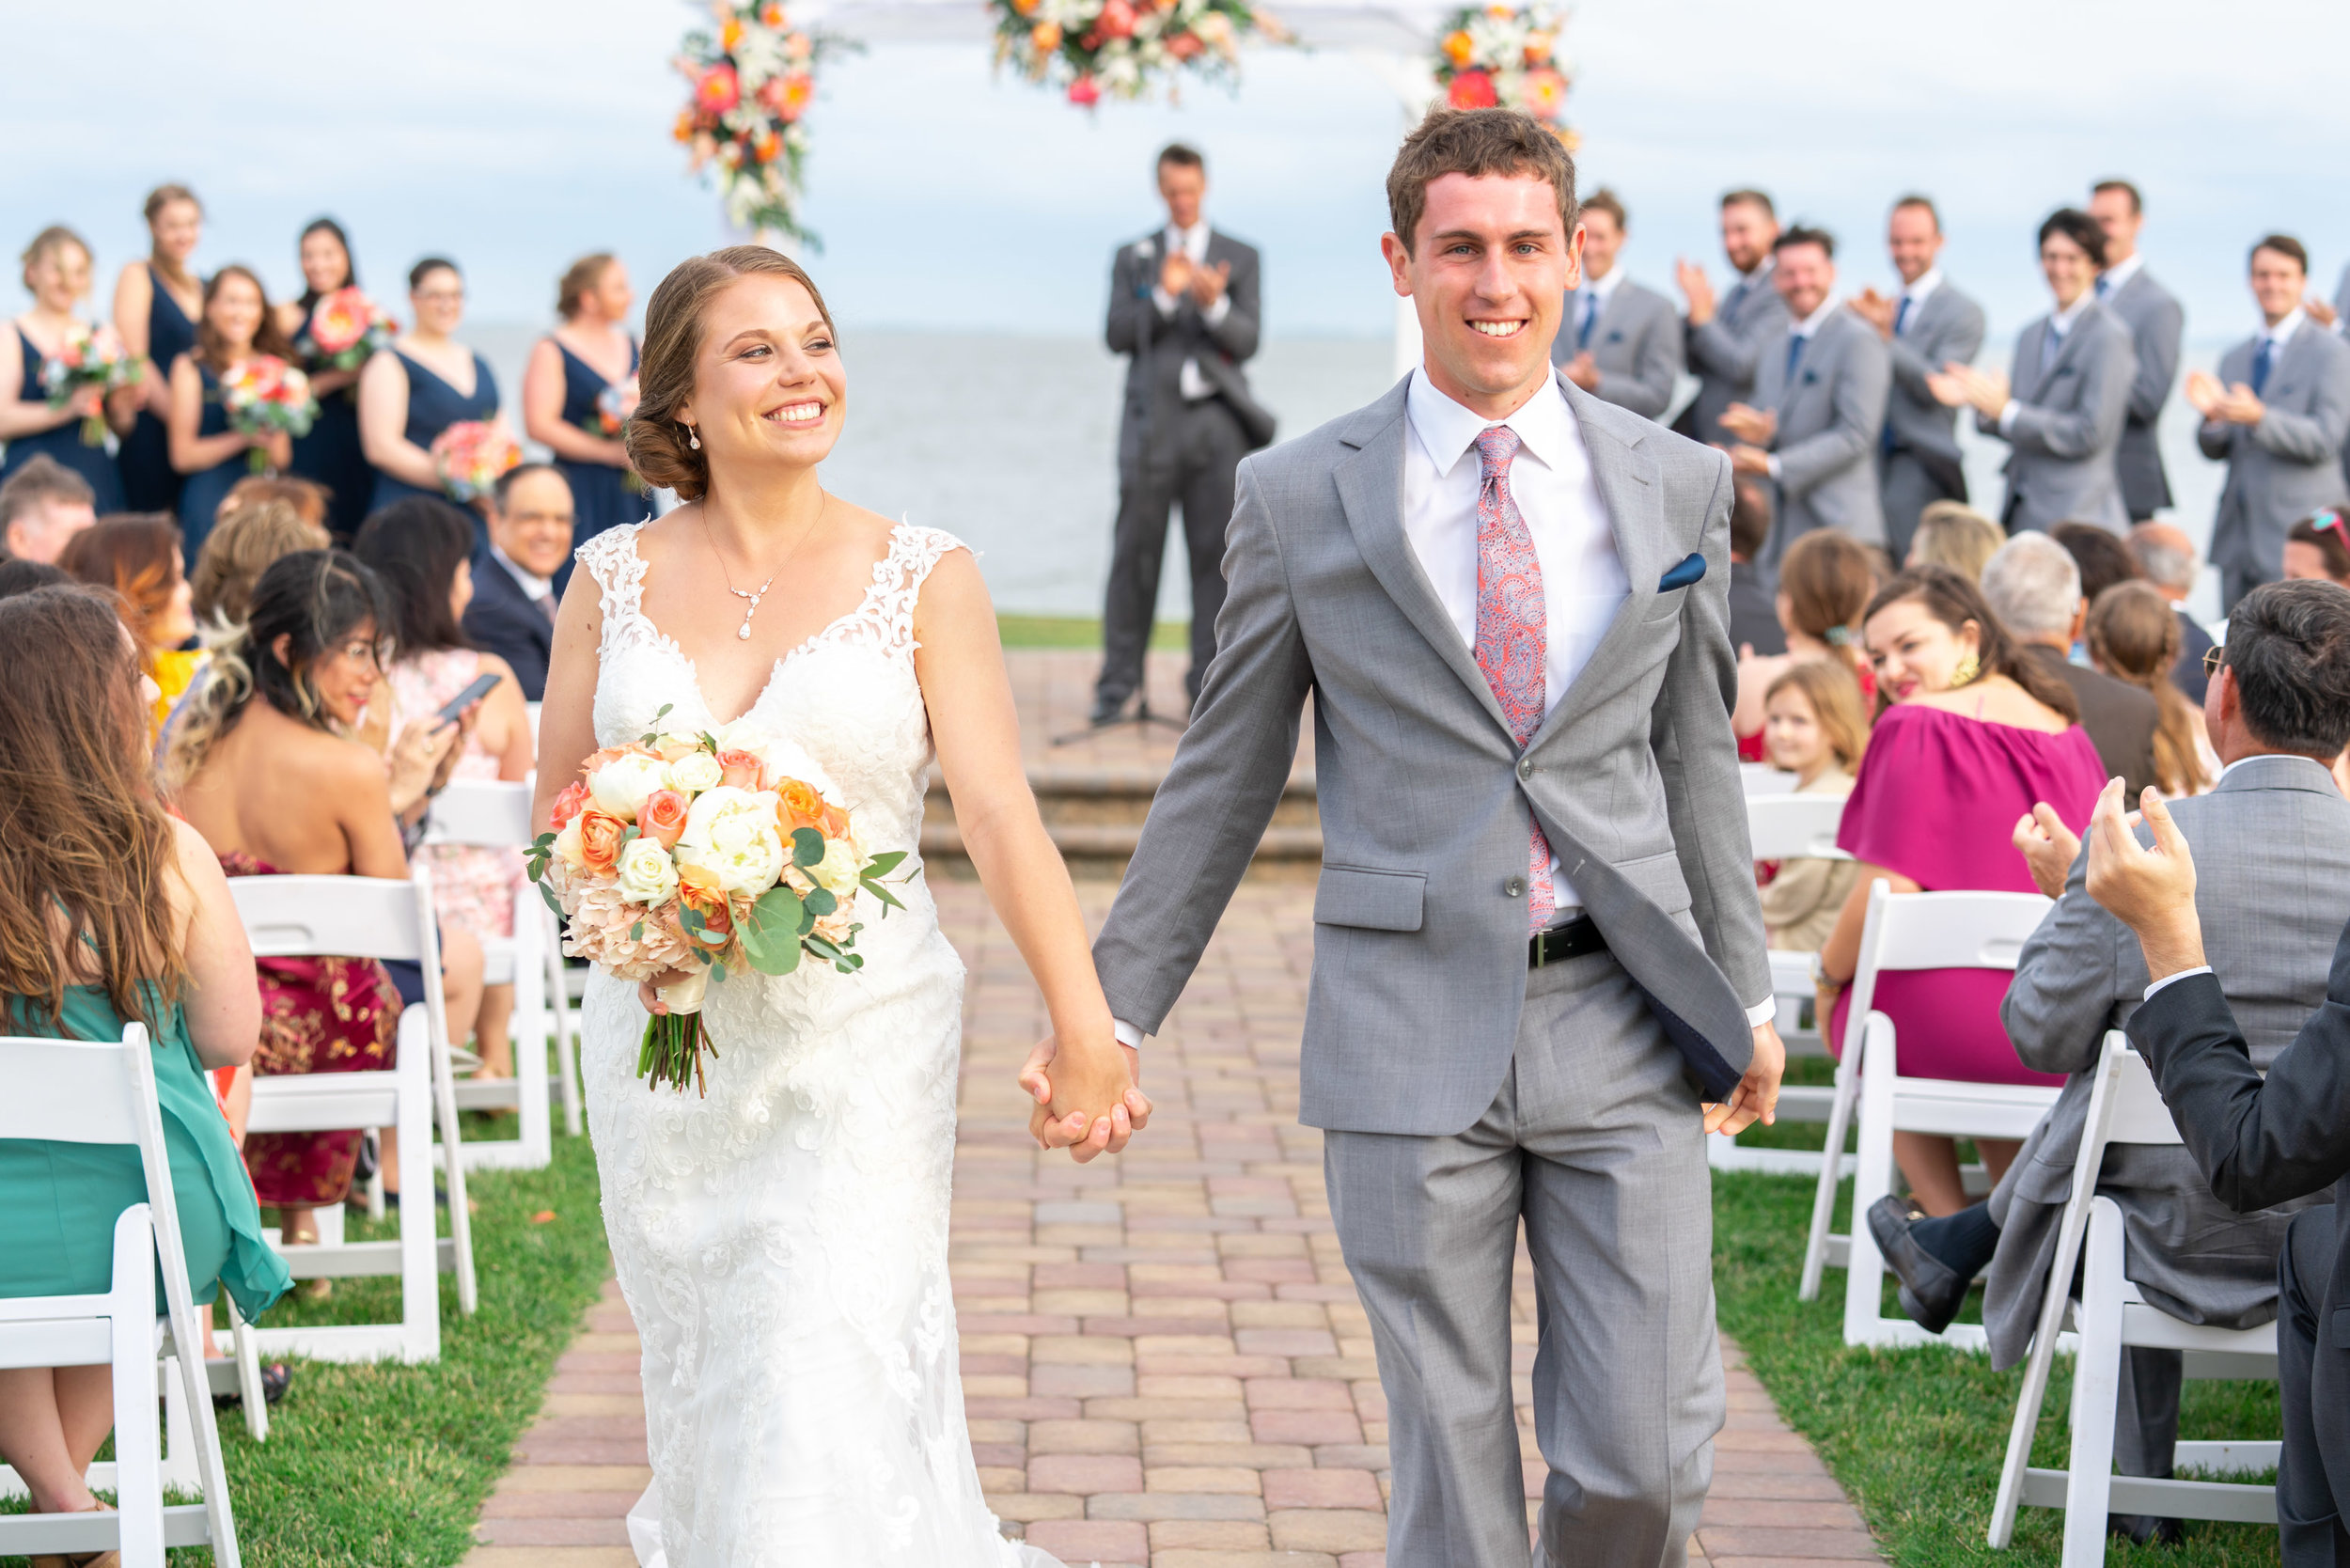 Bride and groom smiling holding hands walking down the aisle at Rehoboth Beach Country Club